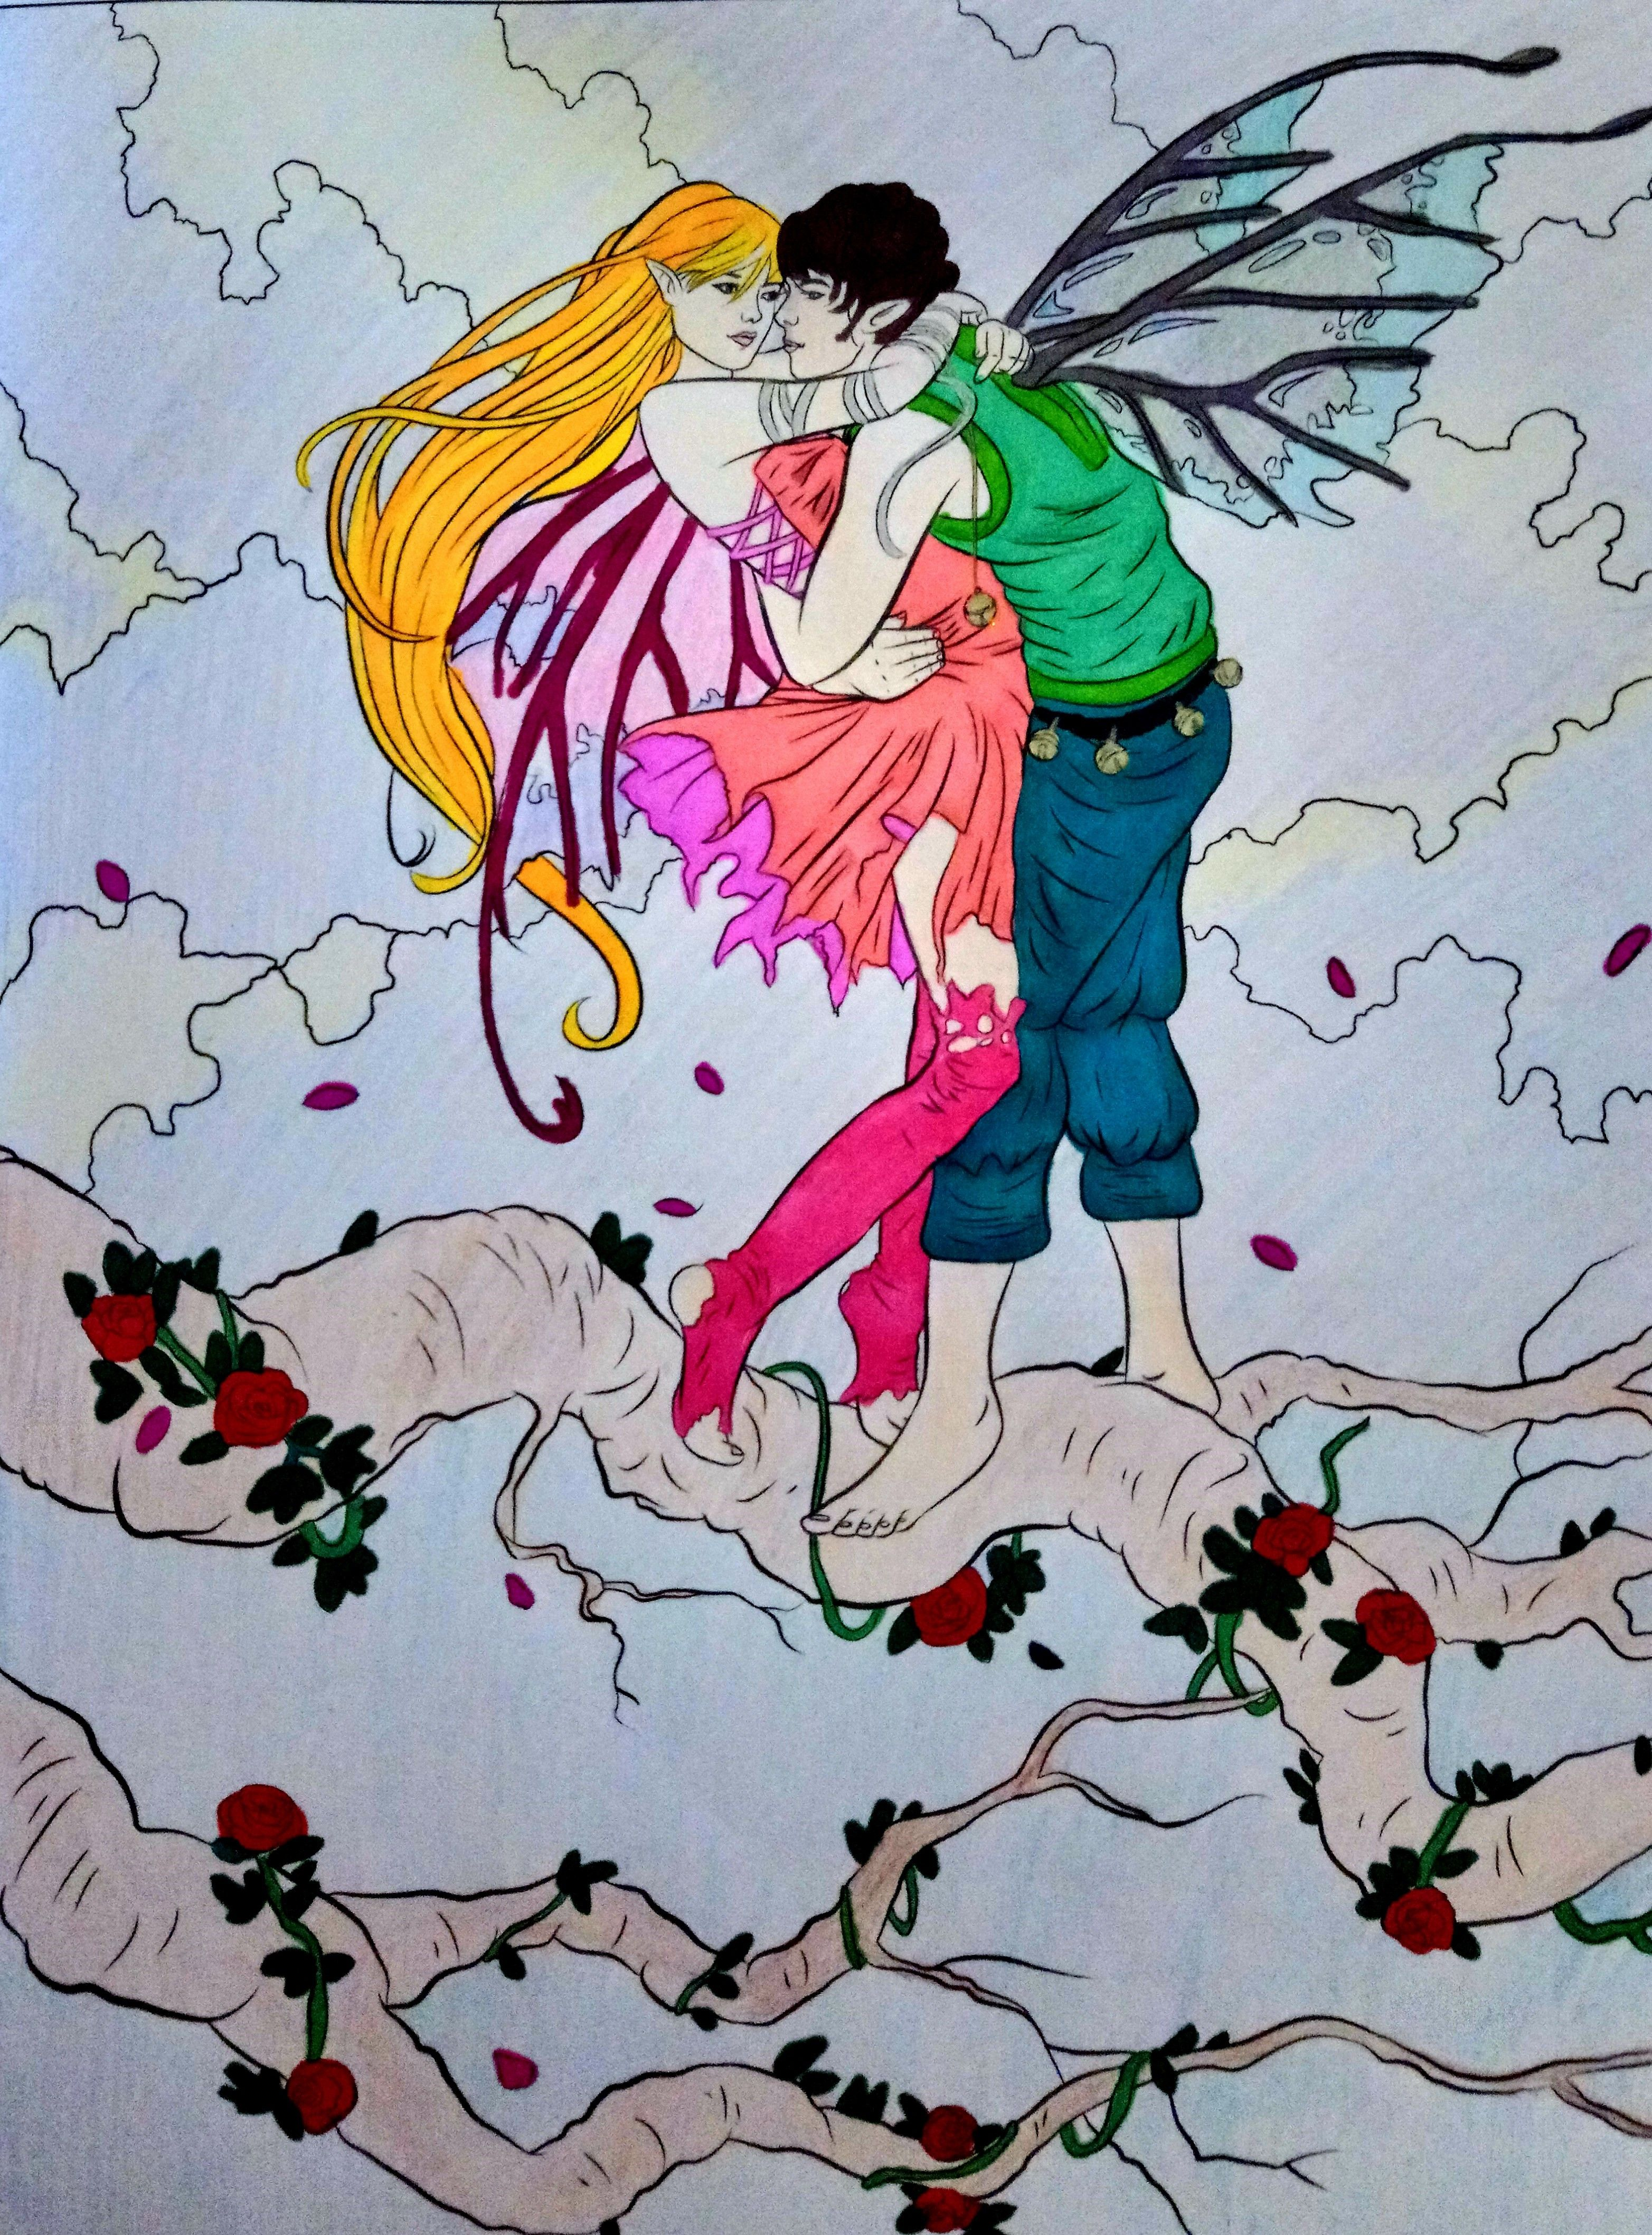 Fairy art coloring book by selina fenech - From Fairy Companions Coloring Book Fairy Romance Dragons And Fairy Pets By Selina Fenech